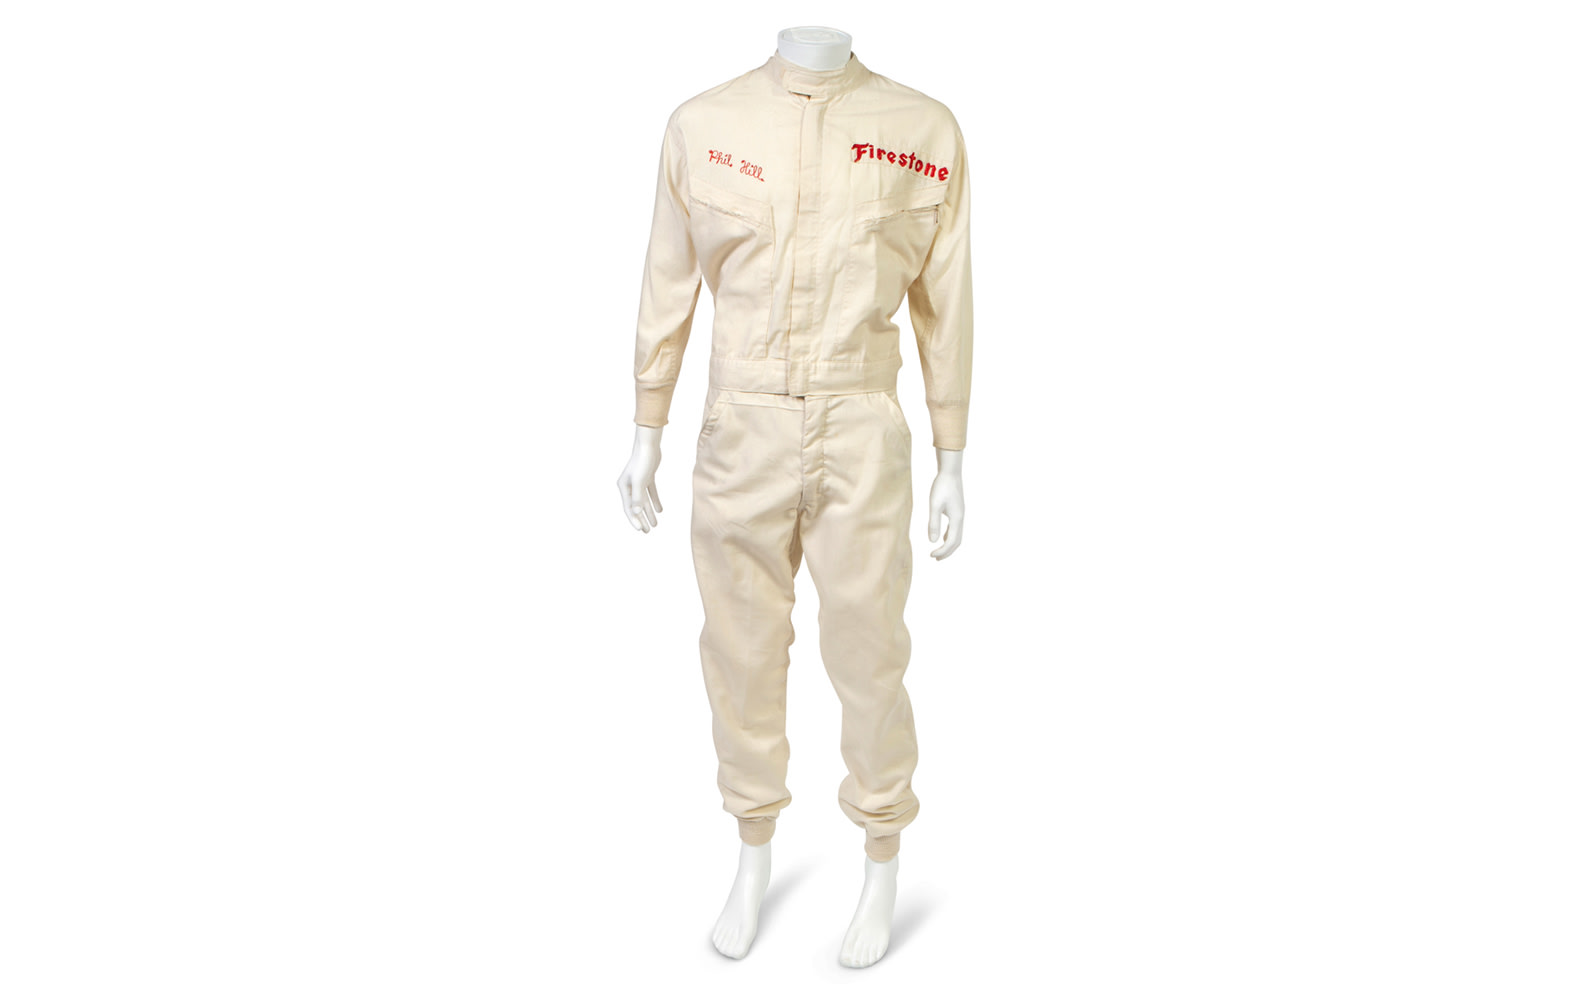 Hinchman Indianapolis Two-Piece Driving Suit, Used During Phil Hill's Time with the Chaparral Racing Team